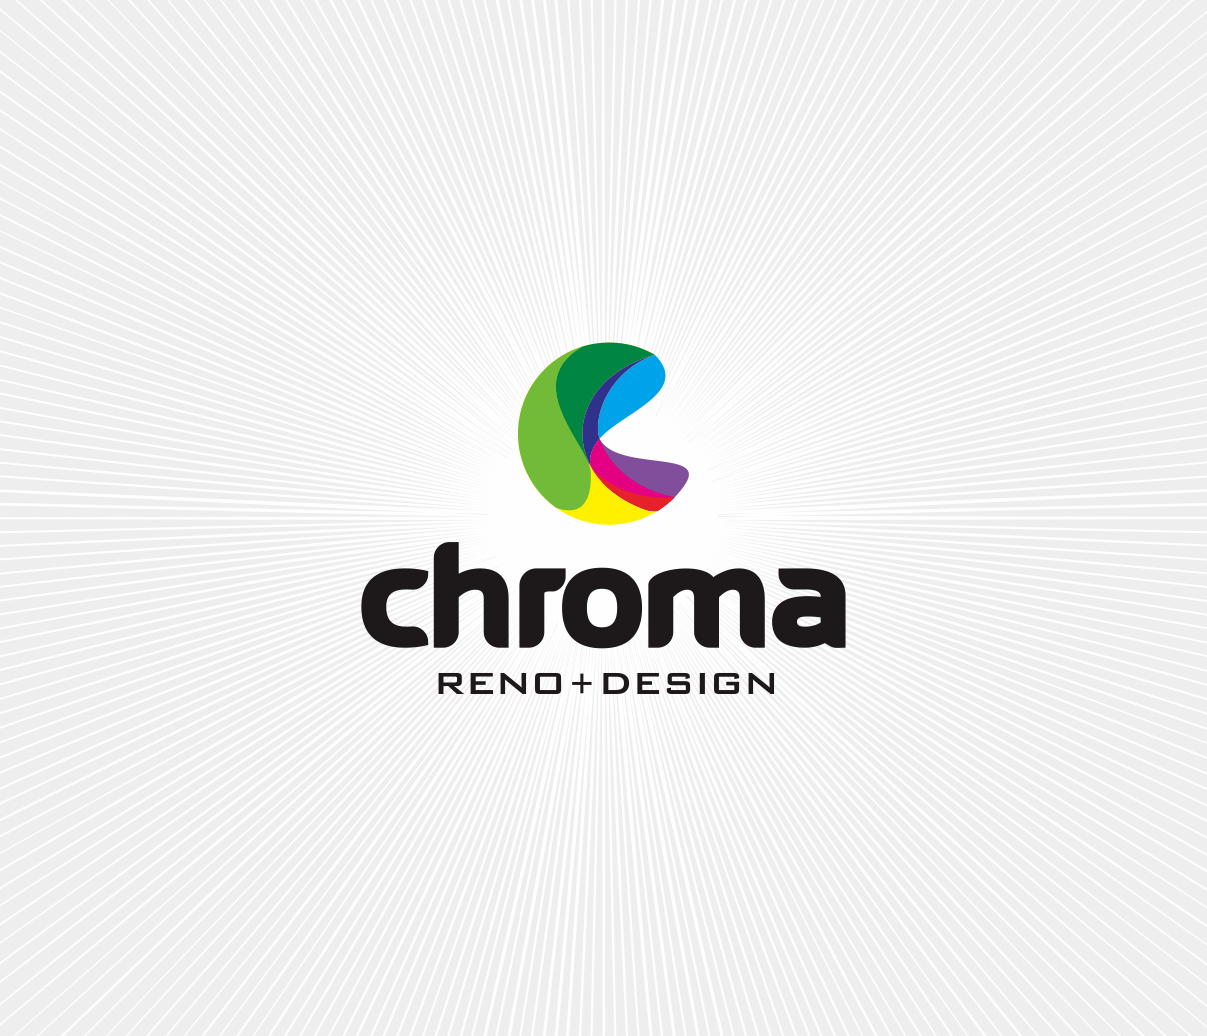 Logo Design by Armada Jamaluddin - Entry No. 125 in the Logo Design Contest Inspiring Logo Design for Chroma Reno+Design.